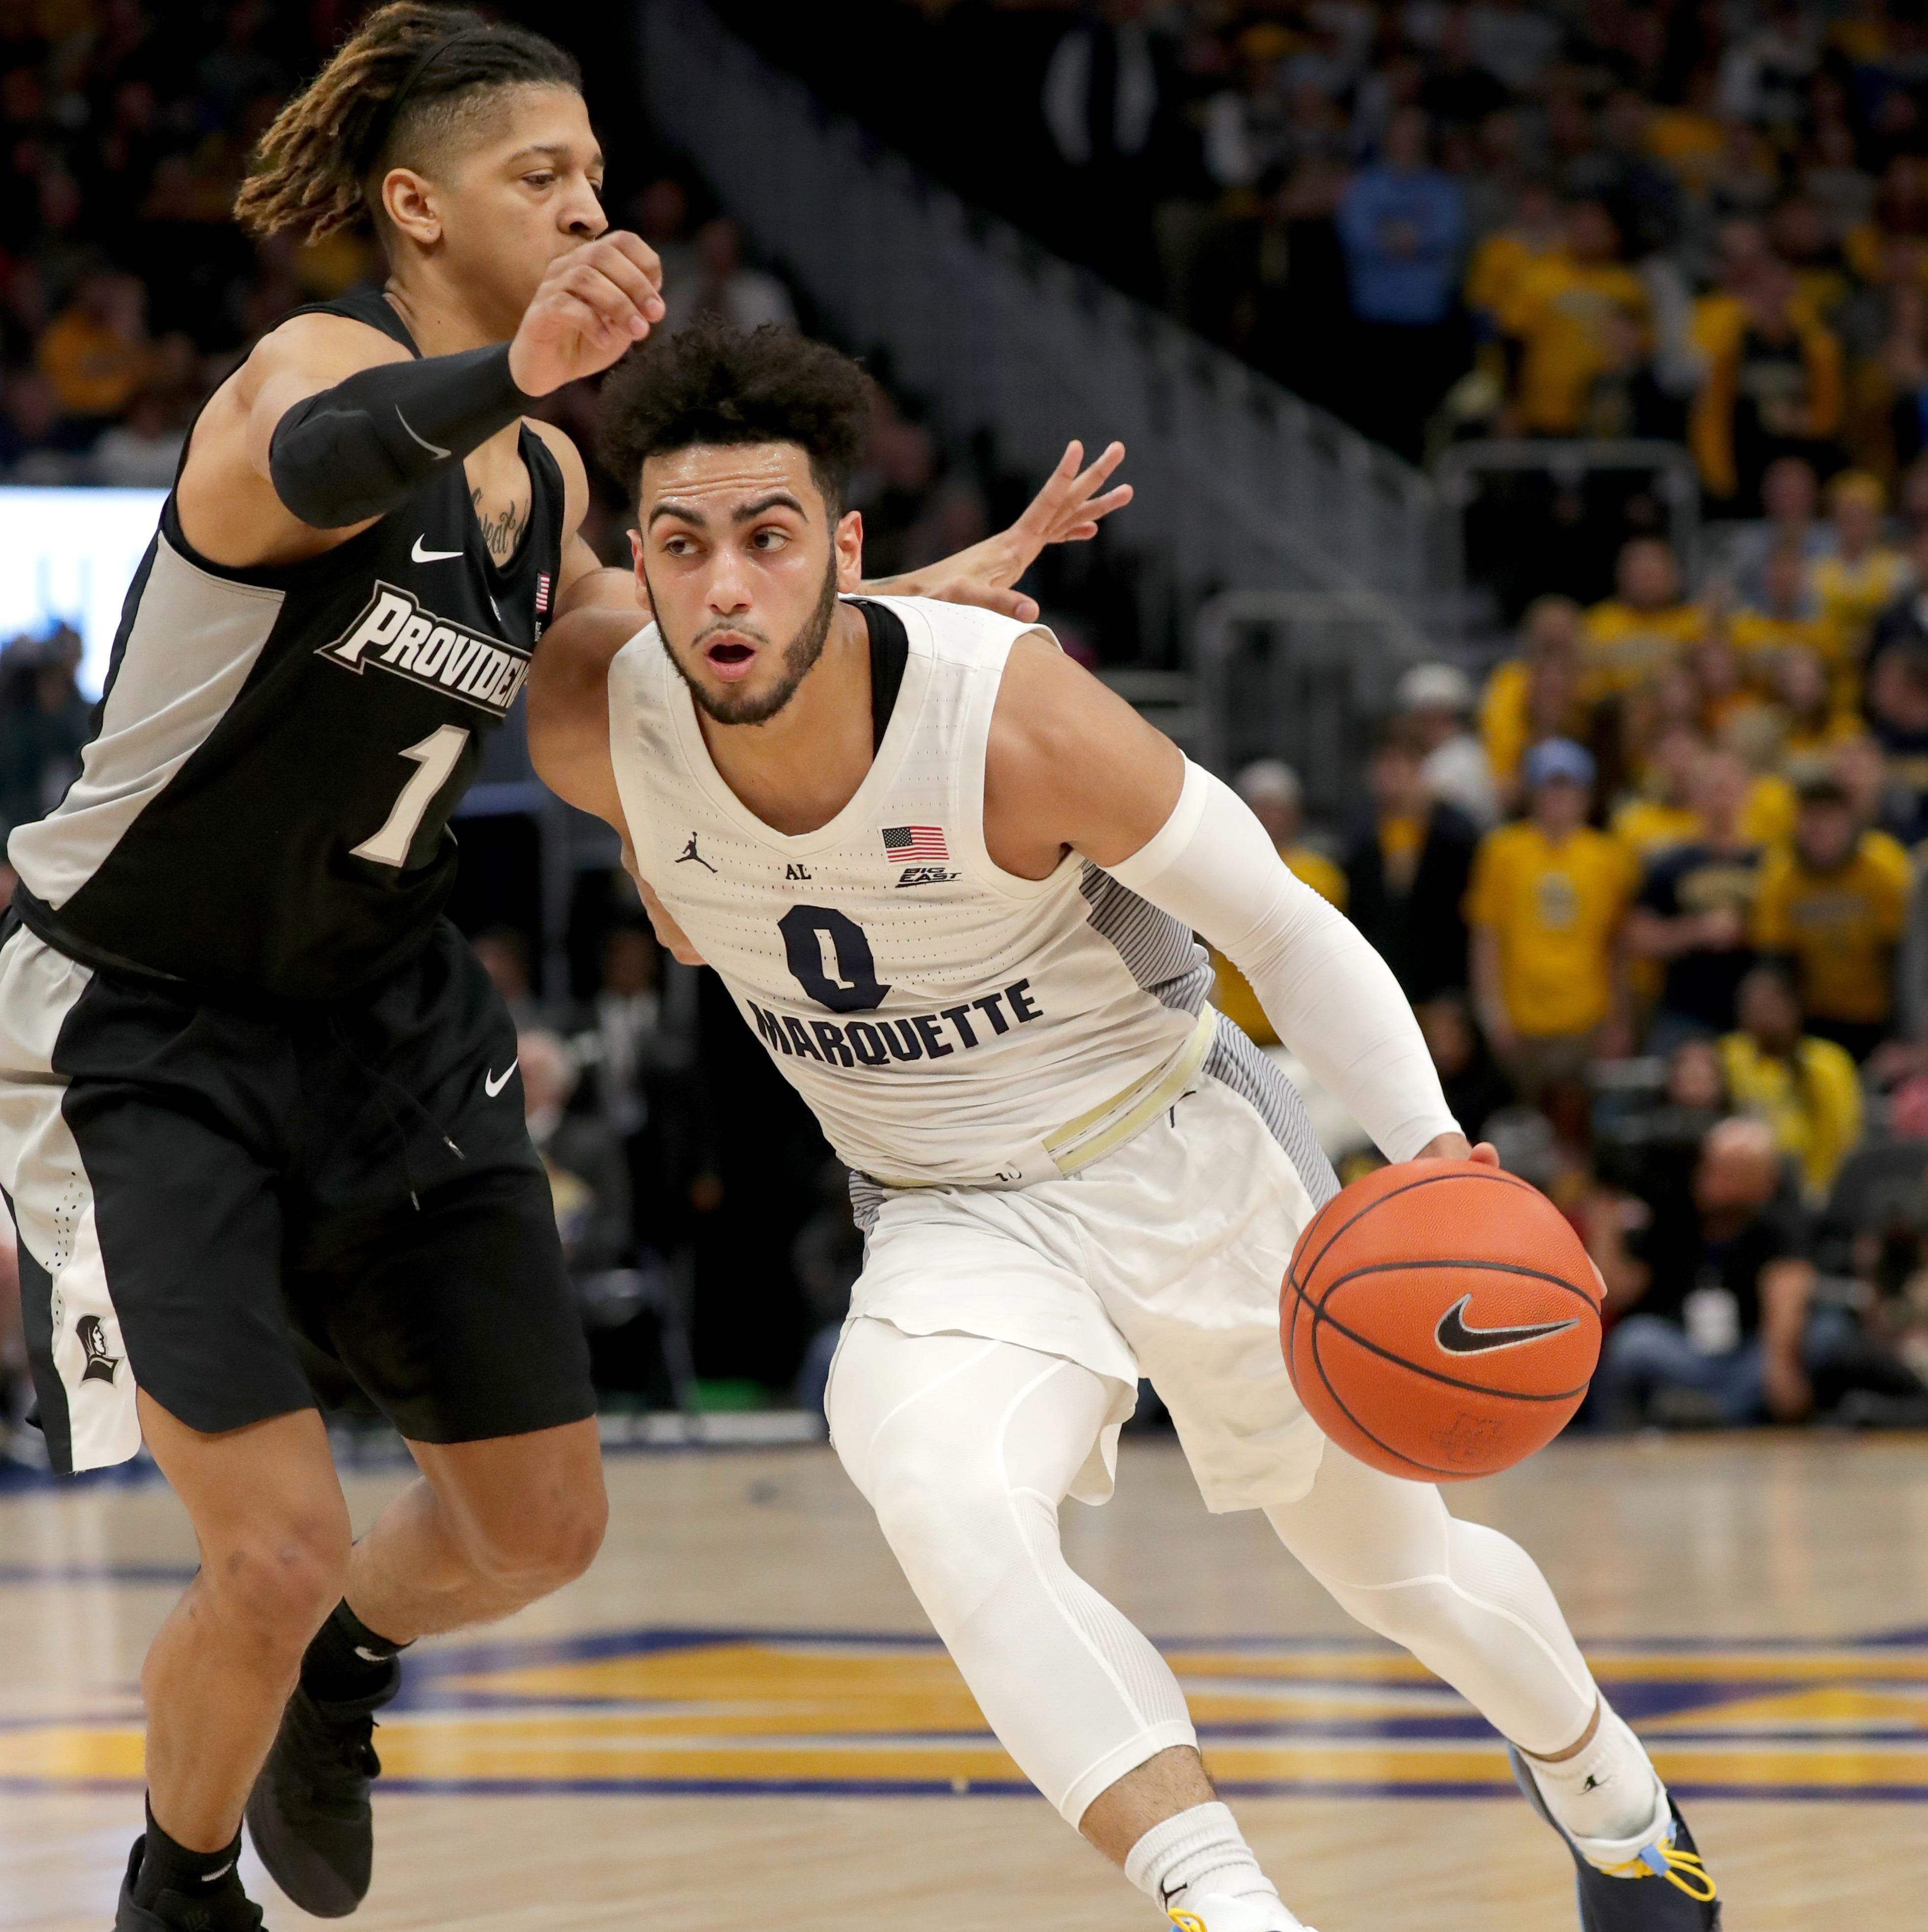 Resume Report: A look at Marquette and Wisconsin's resume as the NCAA Tournament draws near